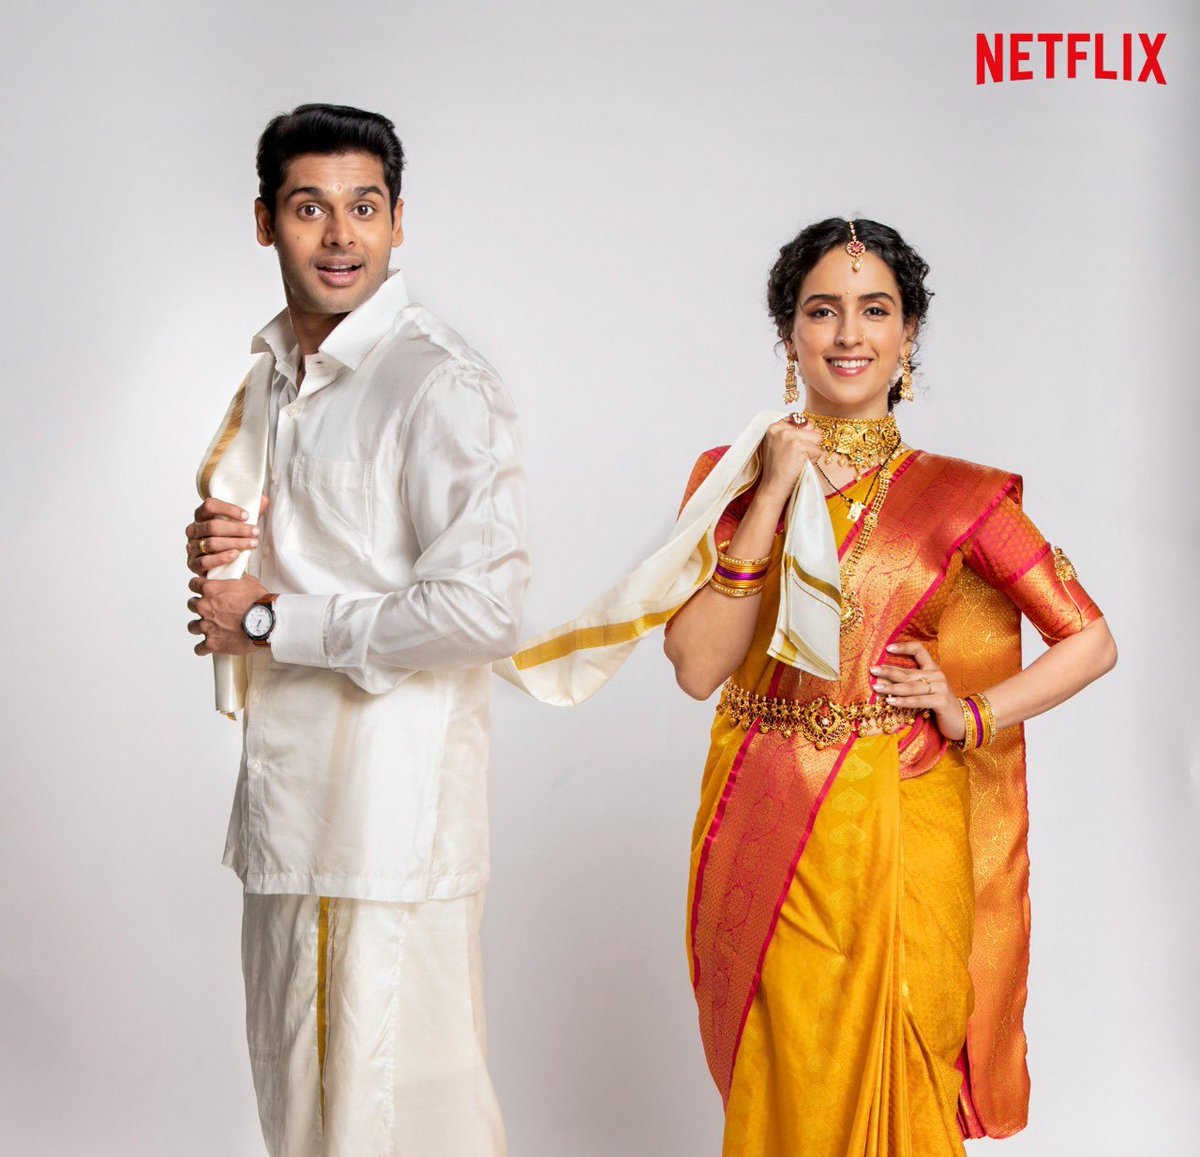 What's in a name? Marriage, love, laughter, tears.  Meenakshi Sundareshwar is ready for it all. Are you? Coming soon to Netflix.  @NetflixIndia @apoorvamehta18 @Abhimannyu_D @sanyamalhotra07 @SonniVivek @NotSoSnob @Dharmatic_